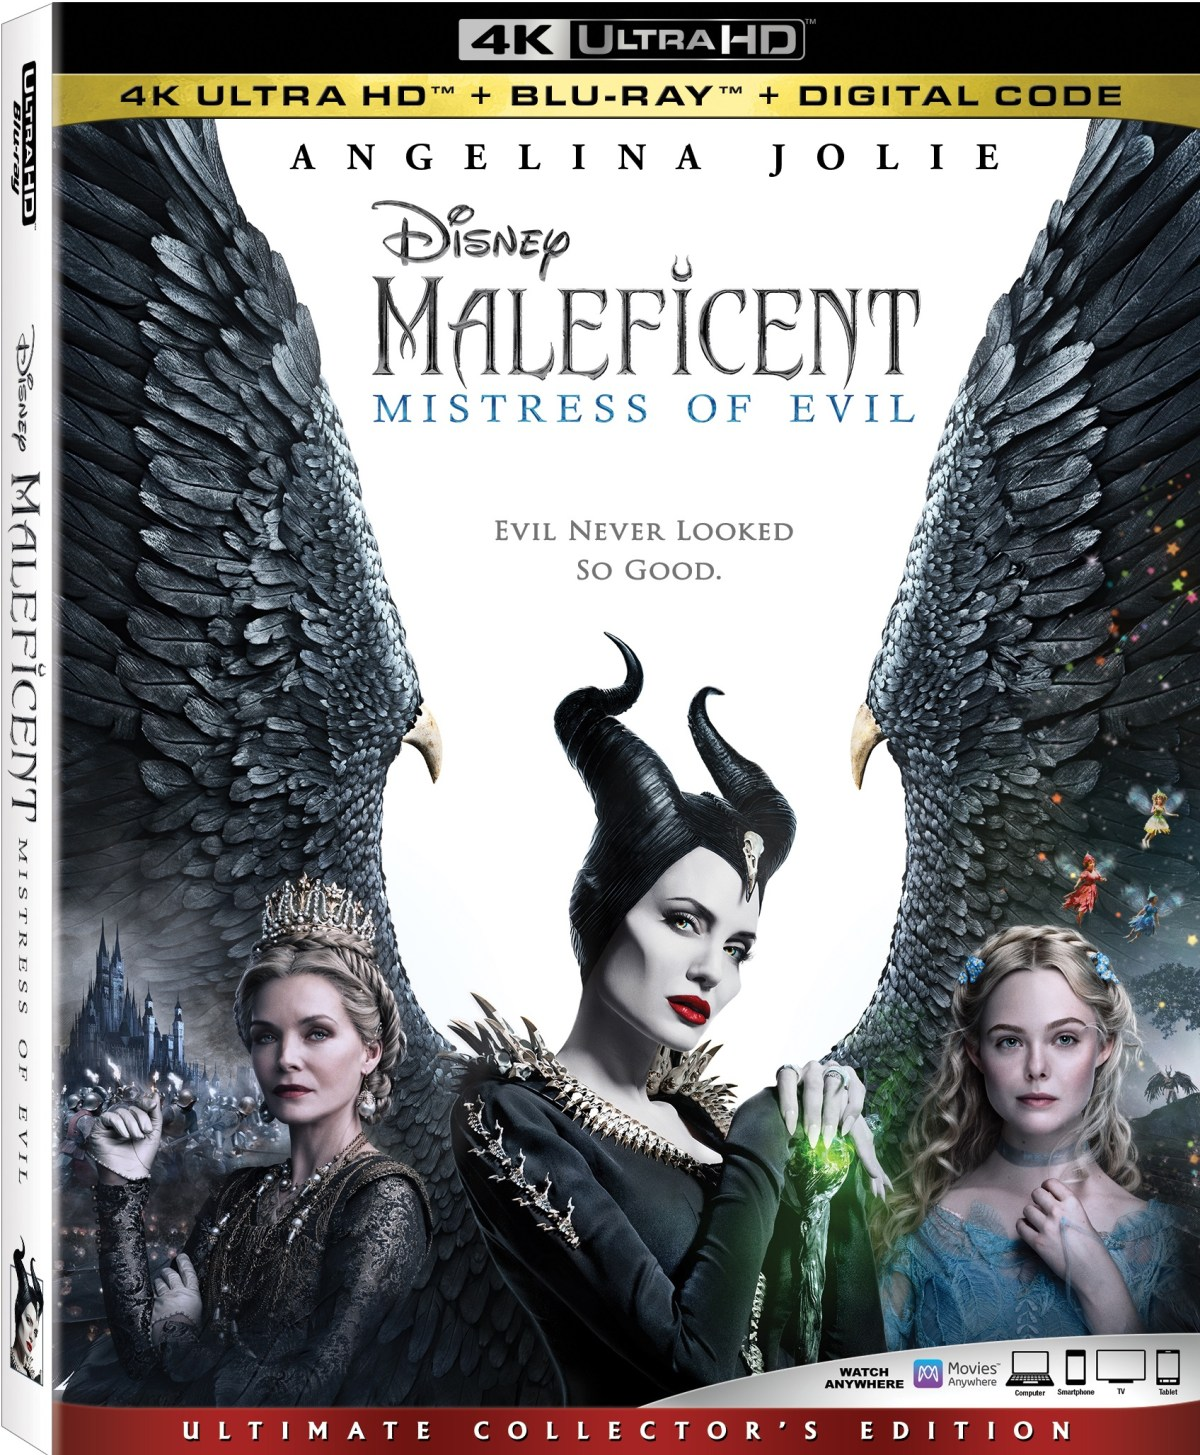 Maleficent: Mistress of Evil; Arrives On Digital December 31, 2019 & On 4K Ultra HD, Blu-ray & DVD January 14, 2020 From Disney 22